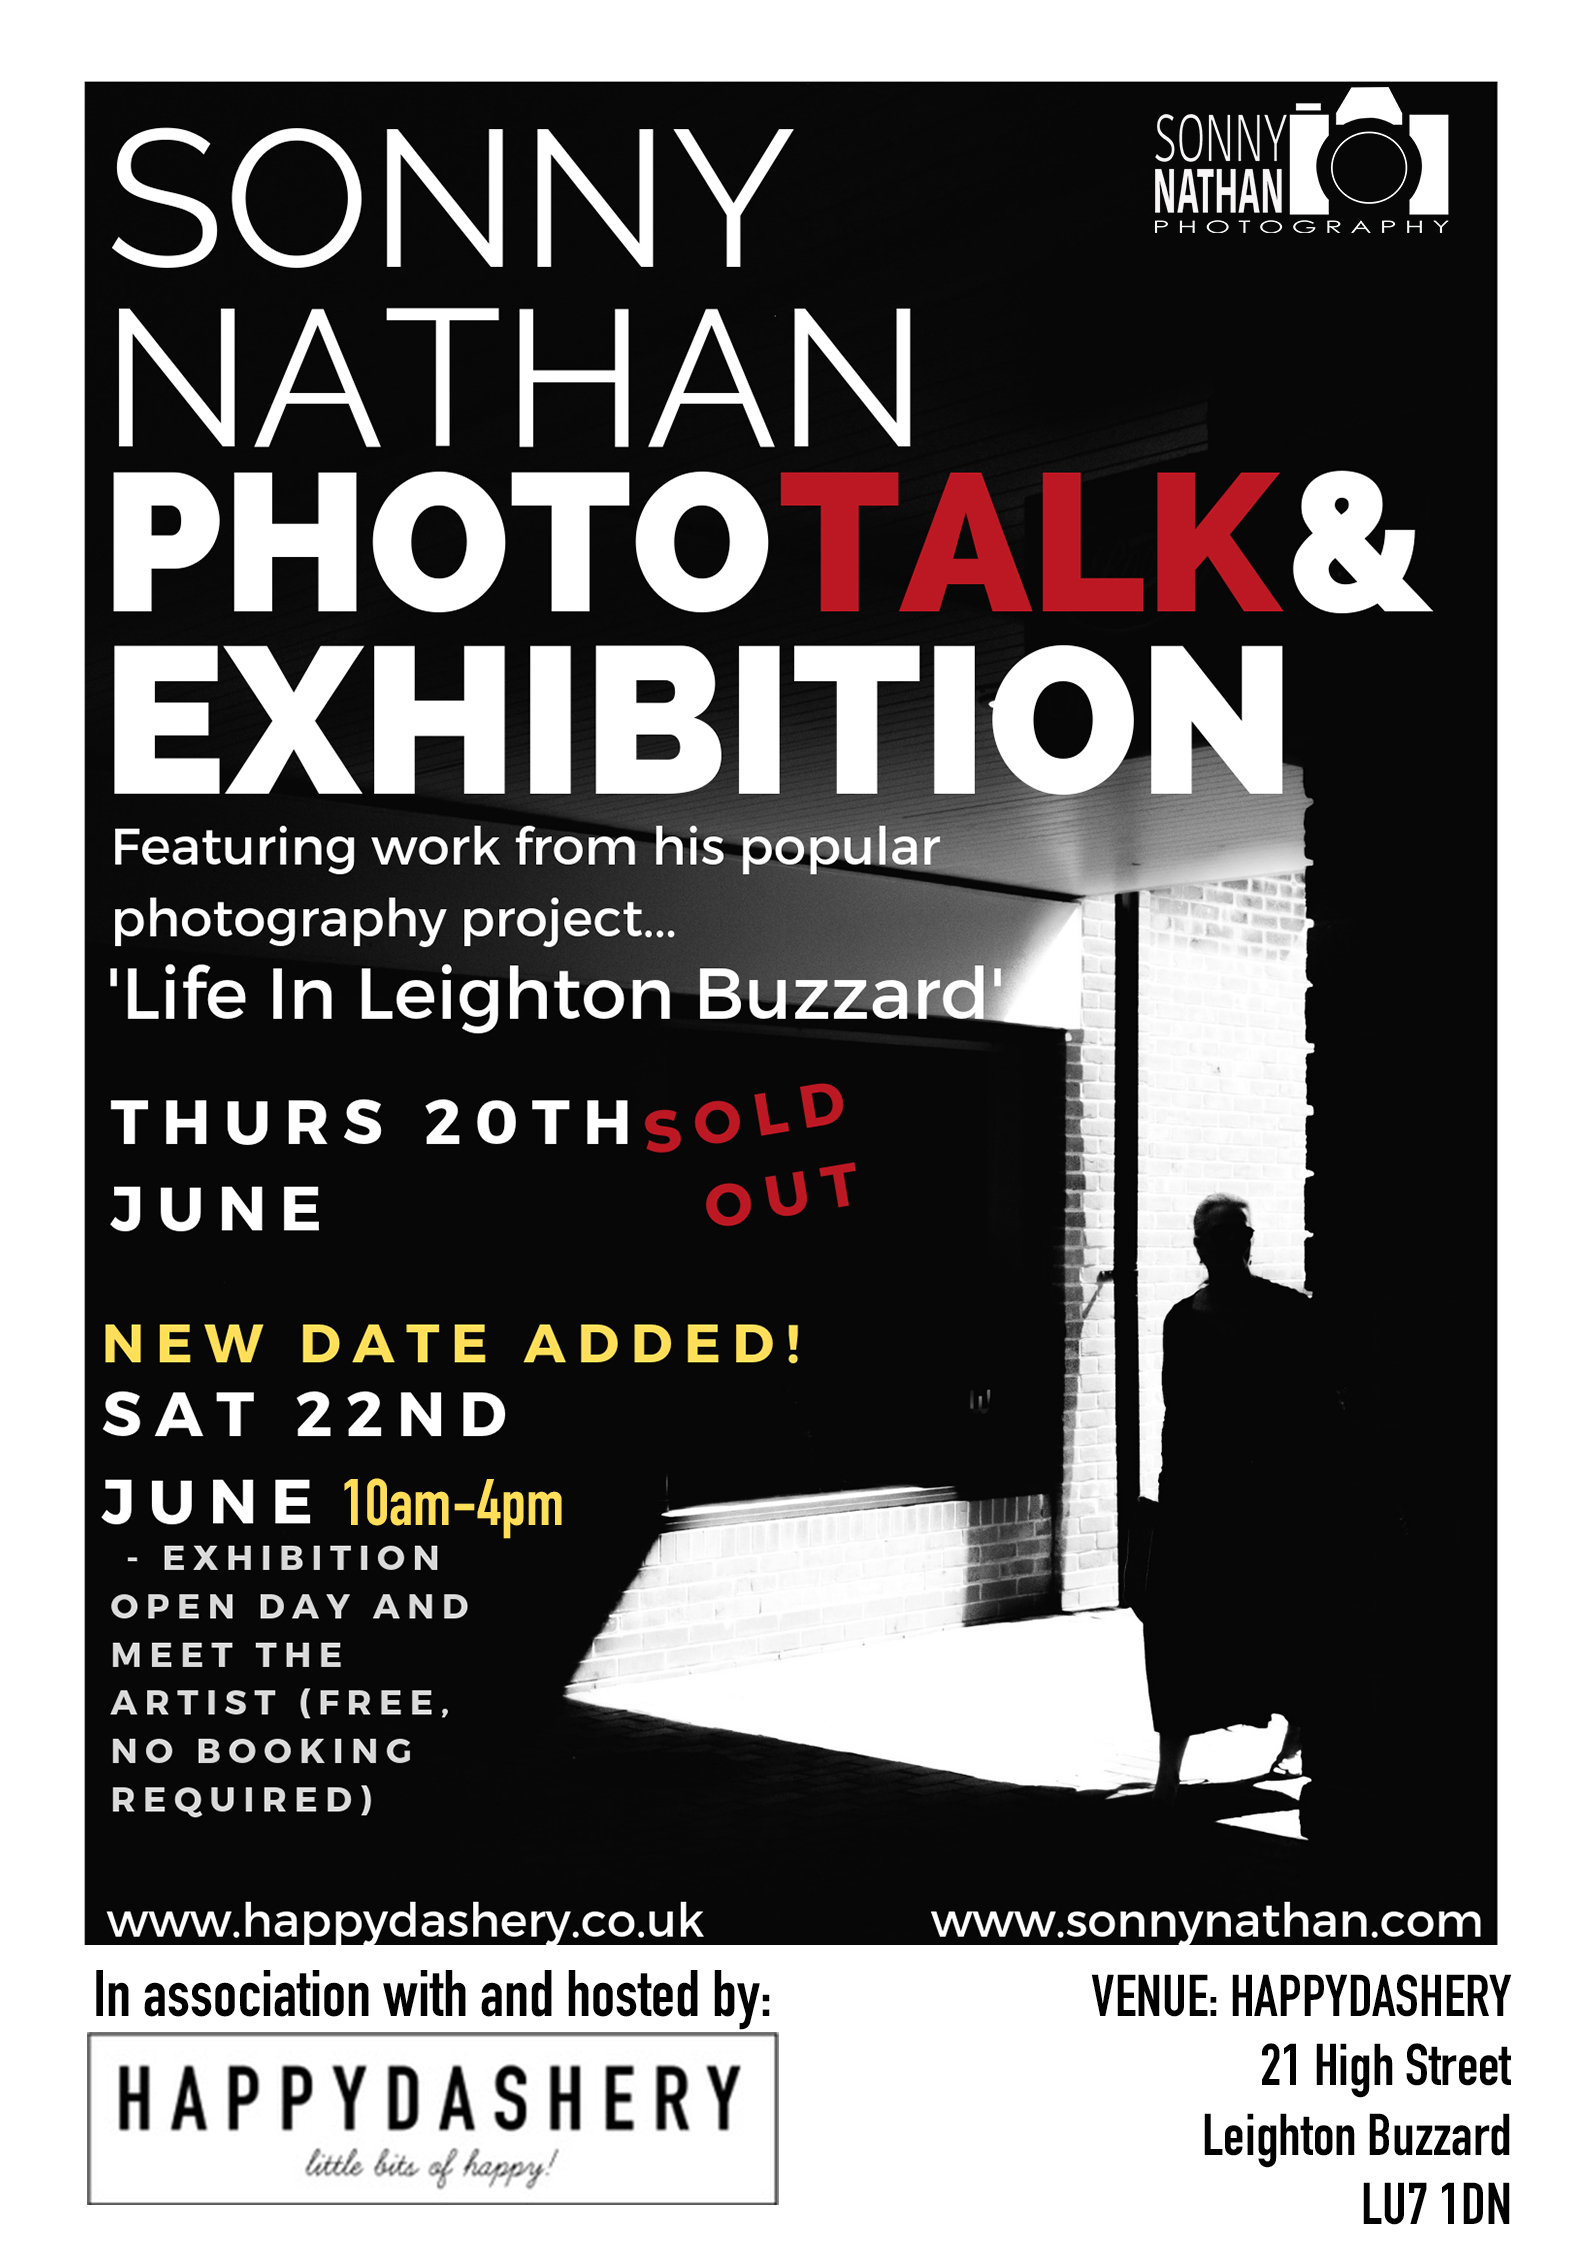 Exhibition and Photo-talk 20th June 2019, 7-9pm. - Exhibition open day and meet the artist, 22nd June 2019, 10am-4pm (free entry).